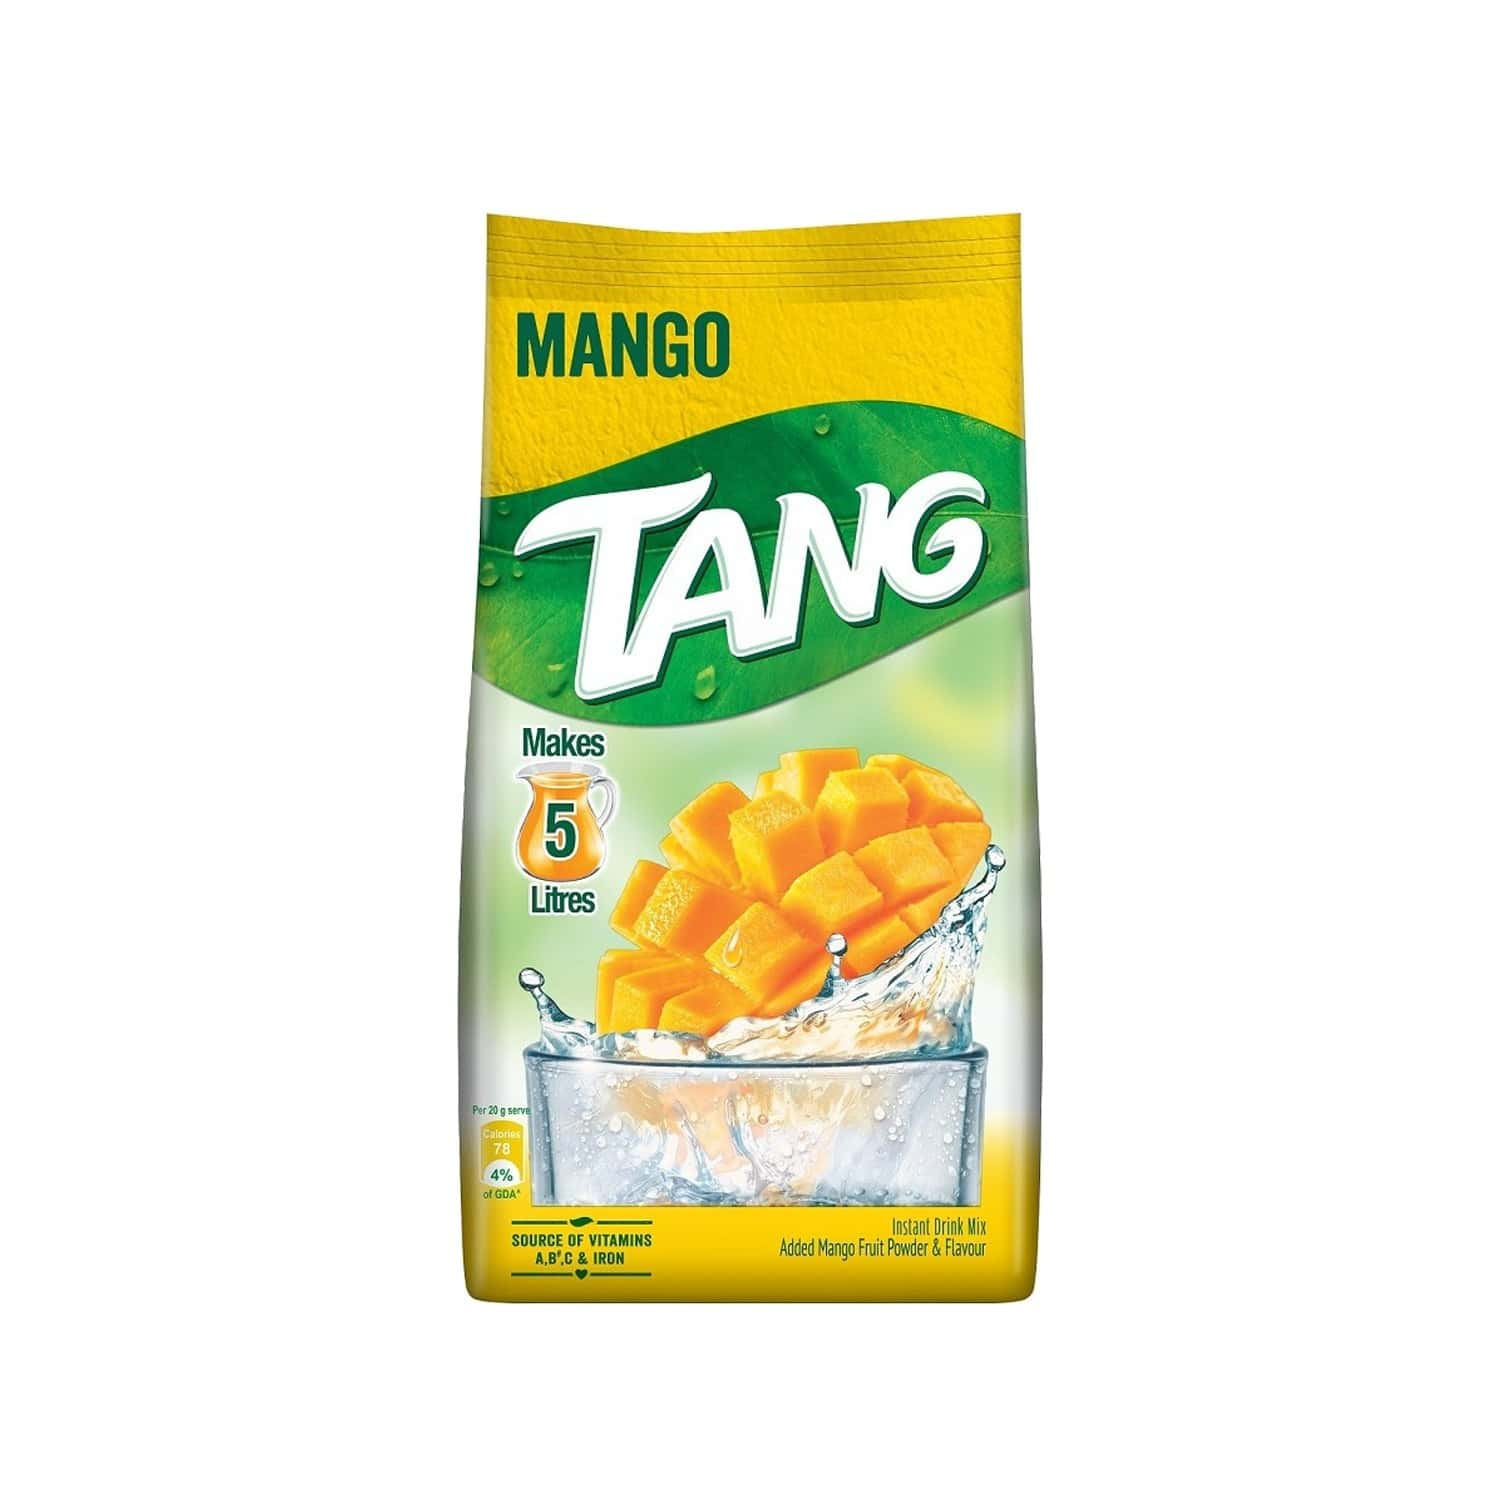 Tang Mango Instant Drink Mix Packet Of 500 G